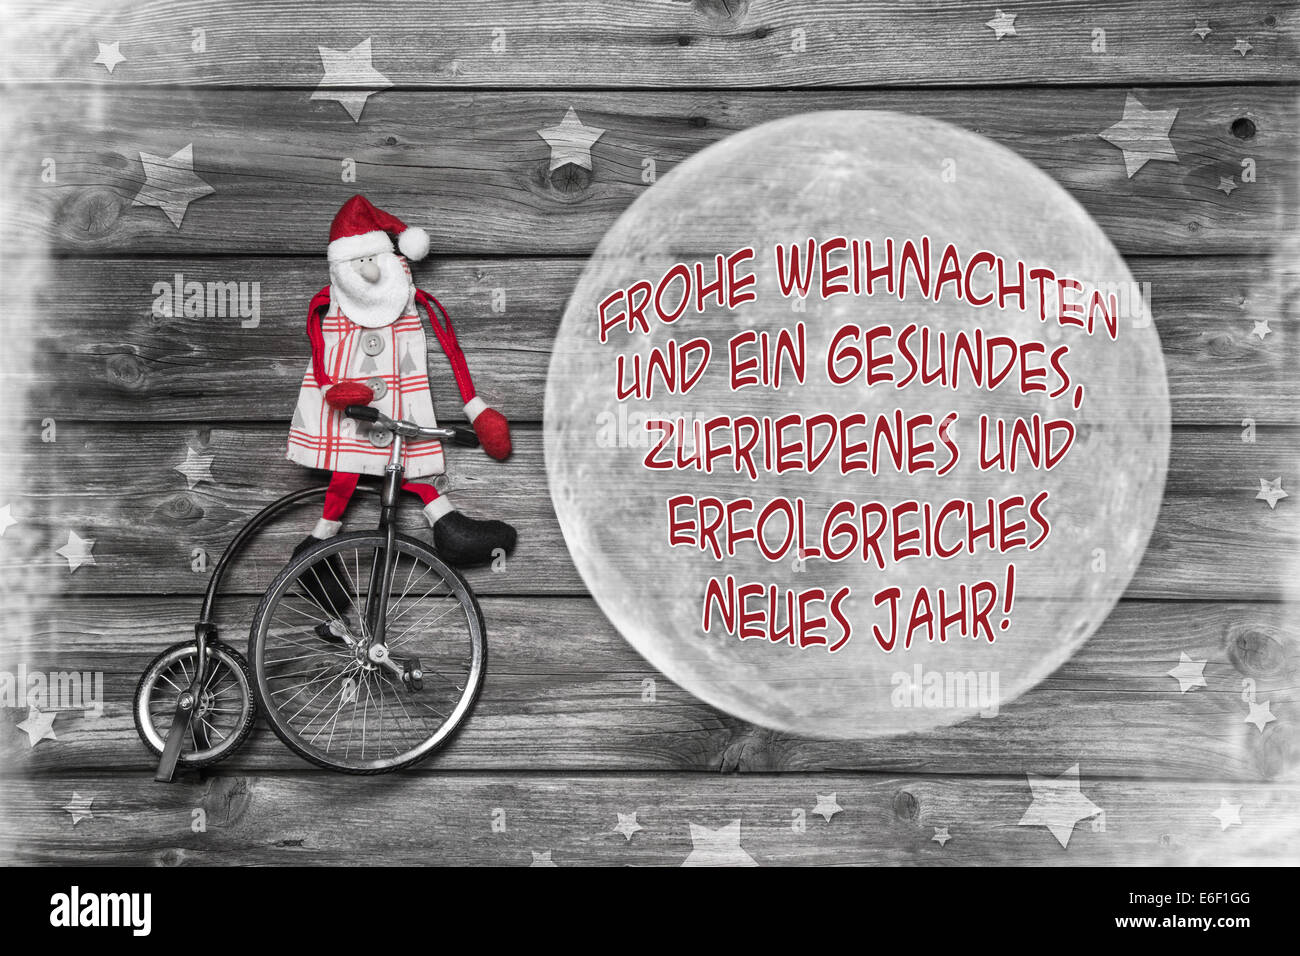 German new year greetings stock photos german new year greetings german christmas greeting card in red white and grey color with text merry xmas and m4hsunfo